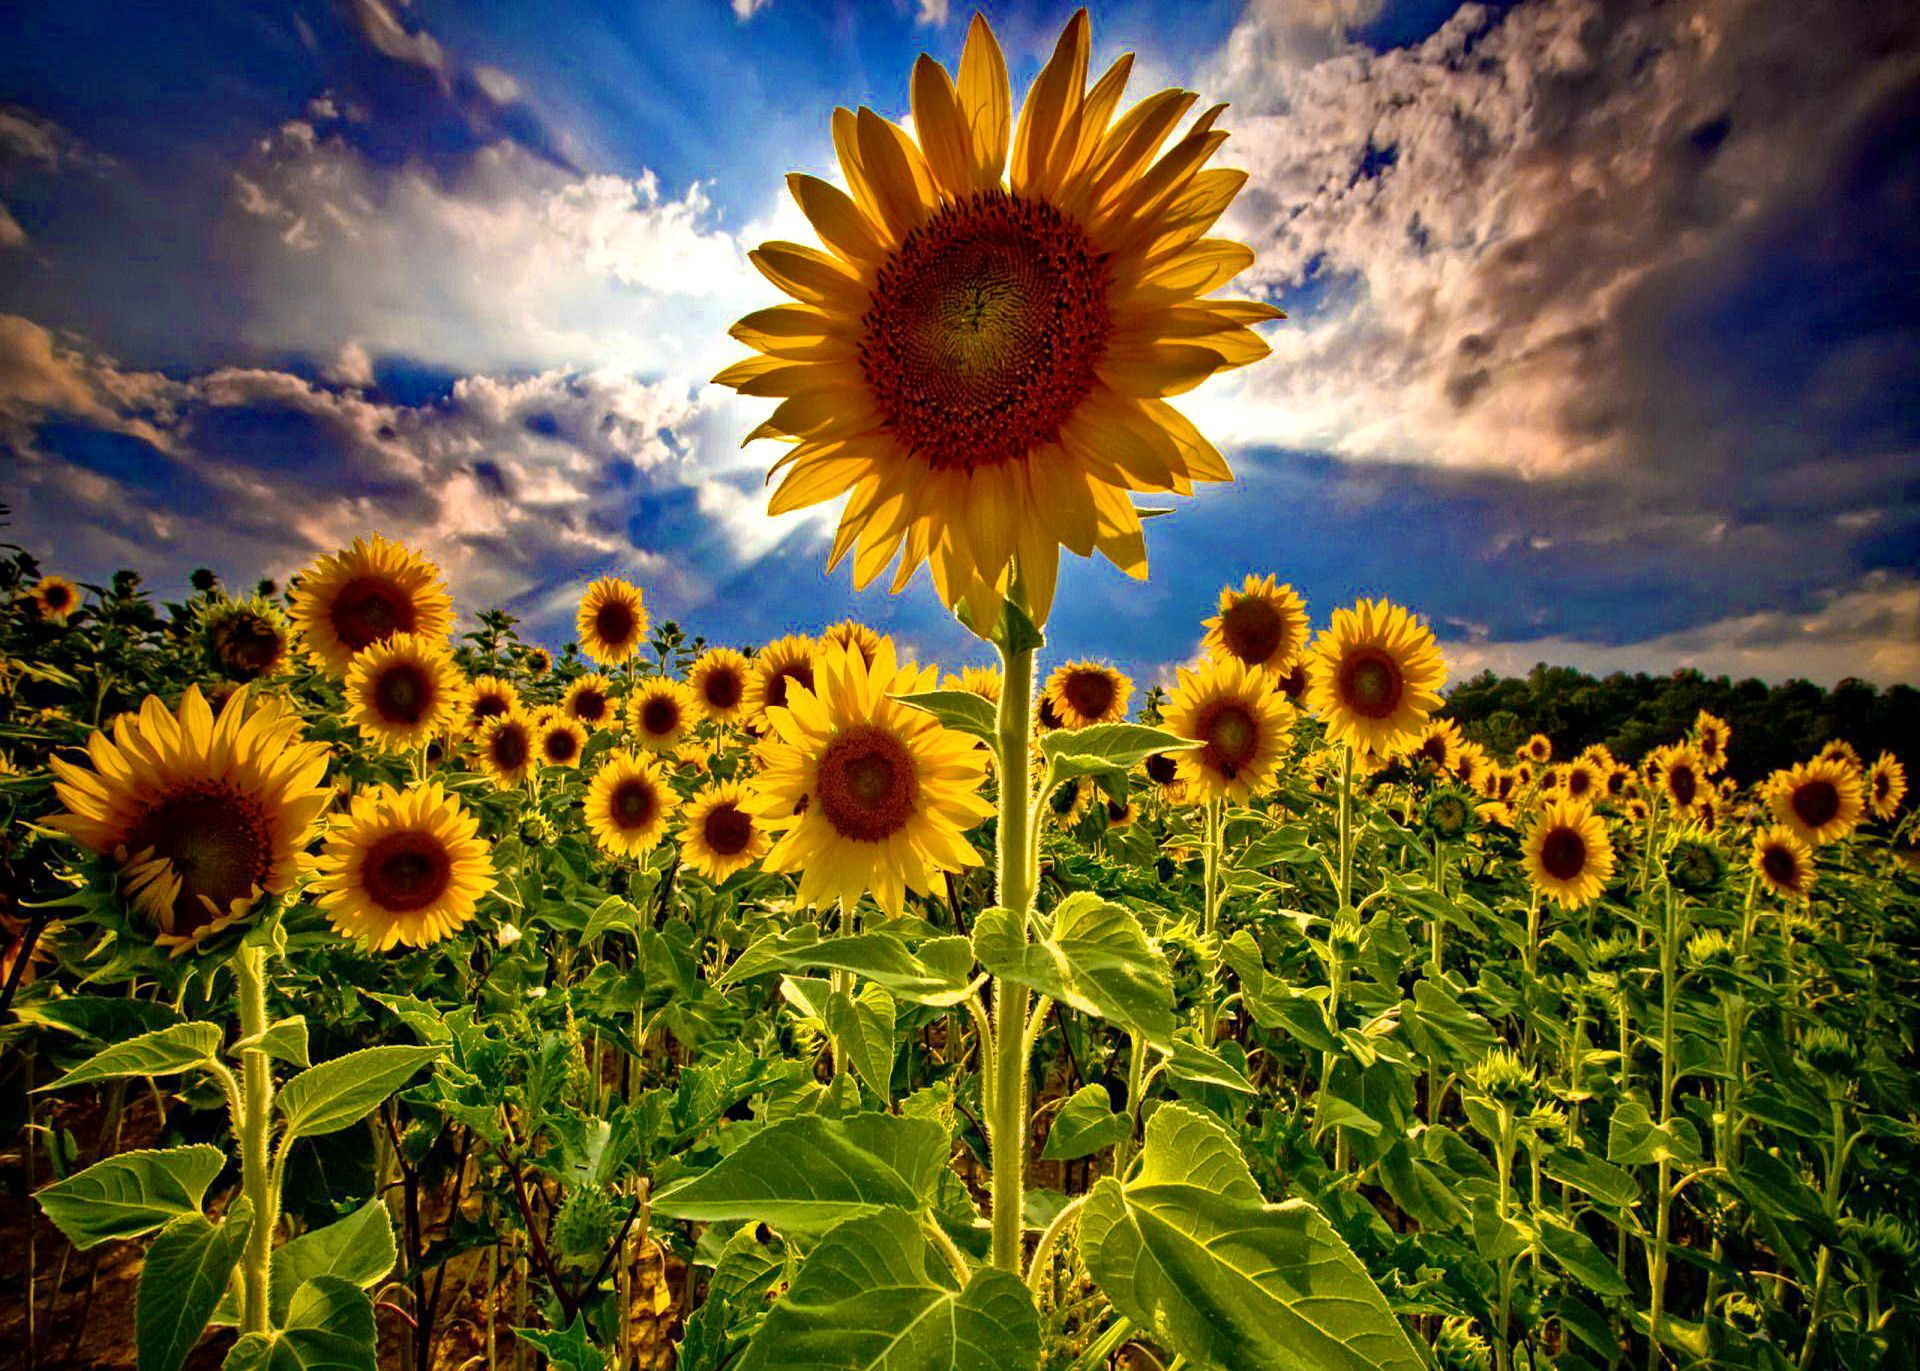 sunflowers pictures | Download Sunflowers Field In The Summer ...